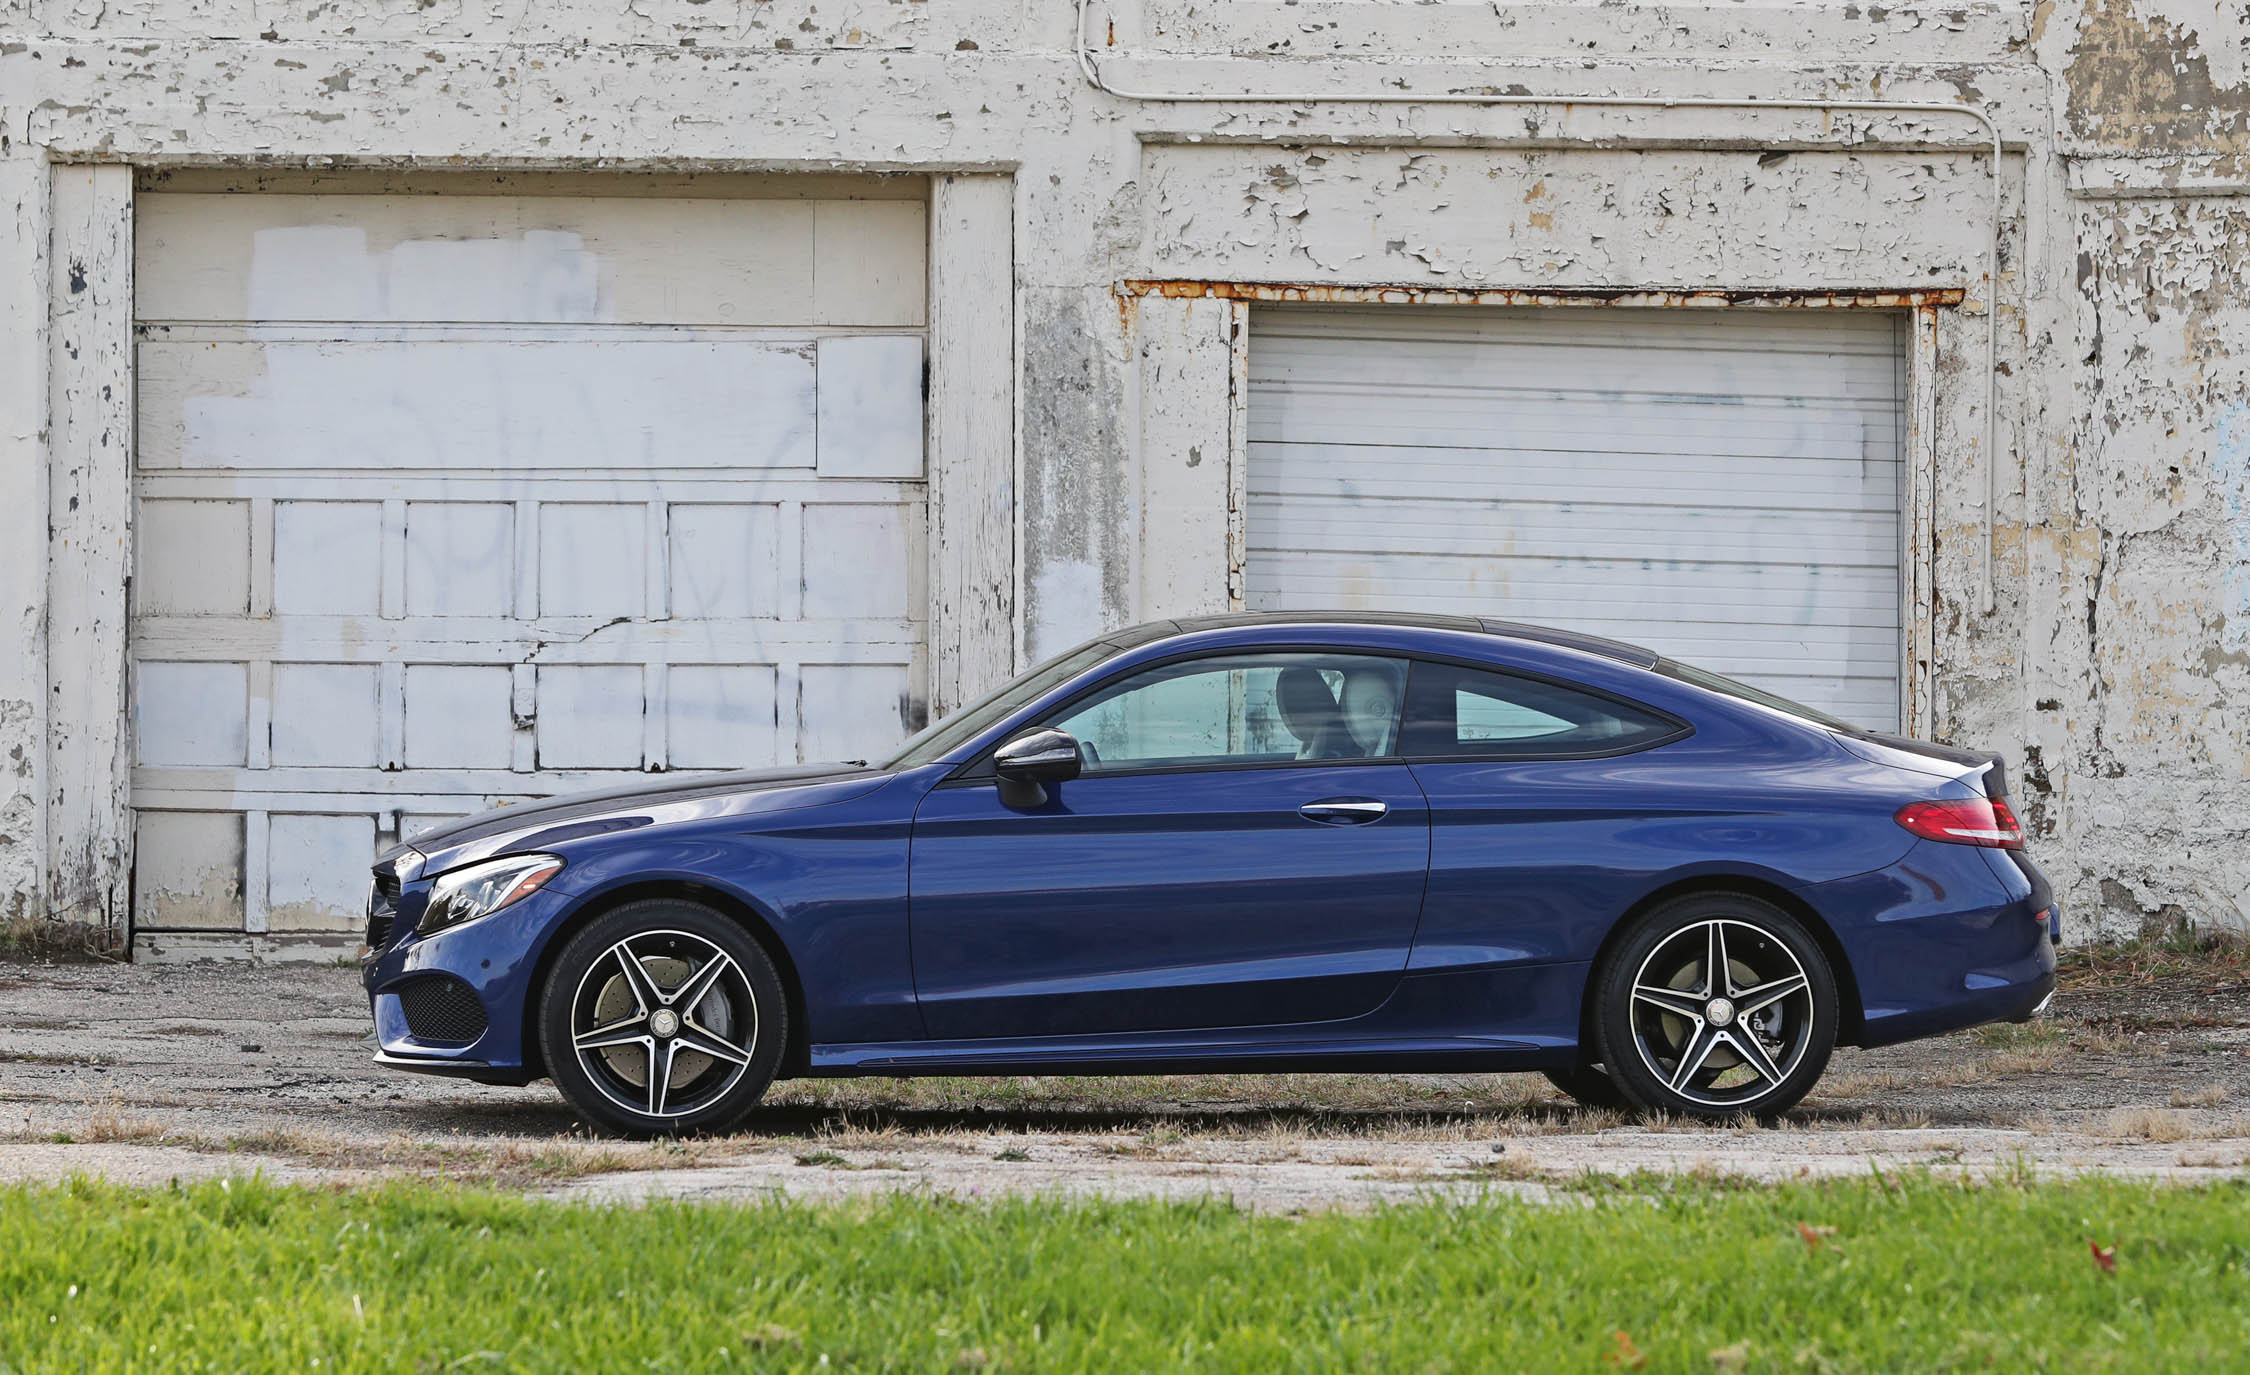 2017 Mercedes Benz C300 4MATIC Coupe Exterior Side (Photo 29 of 44)